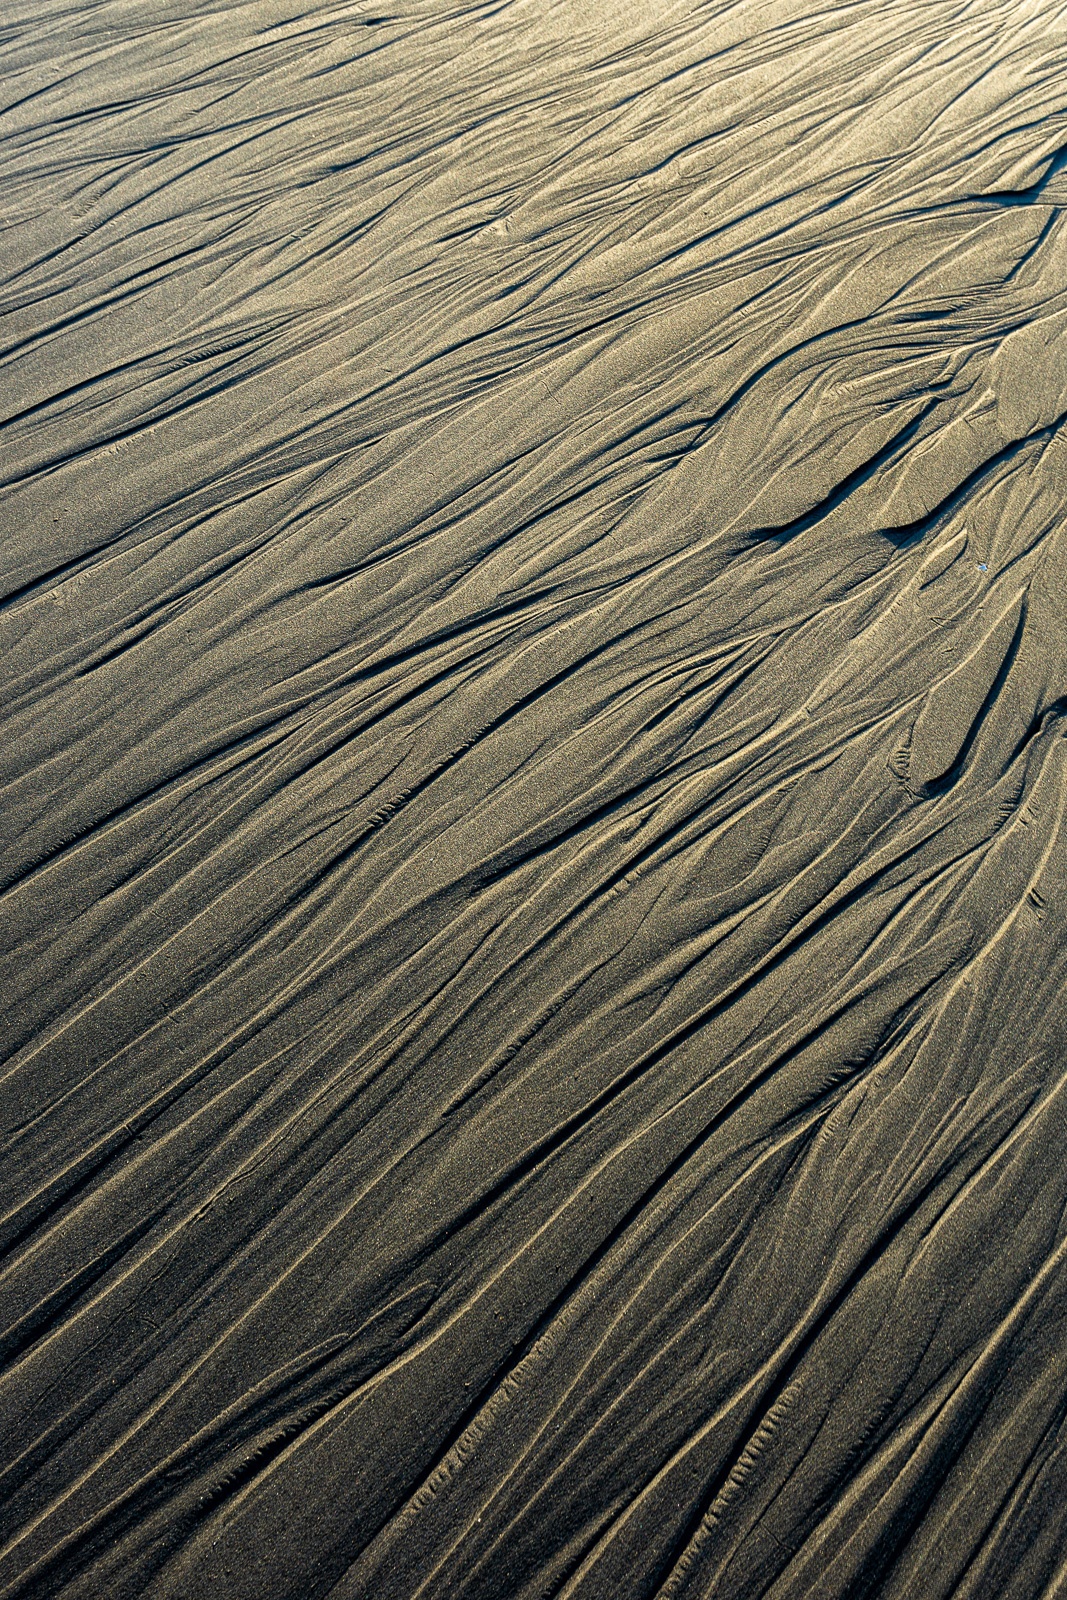 Golden sunset light reveals patterns and textures in wet beach sand on a secluded beach along the Oregon Coast.